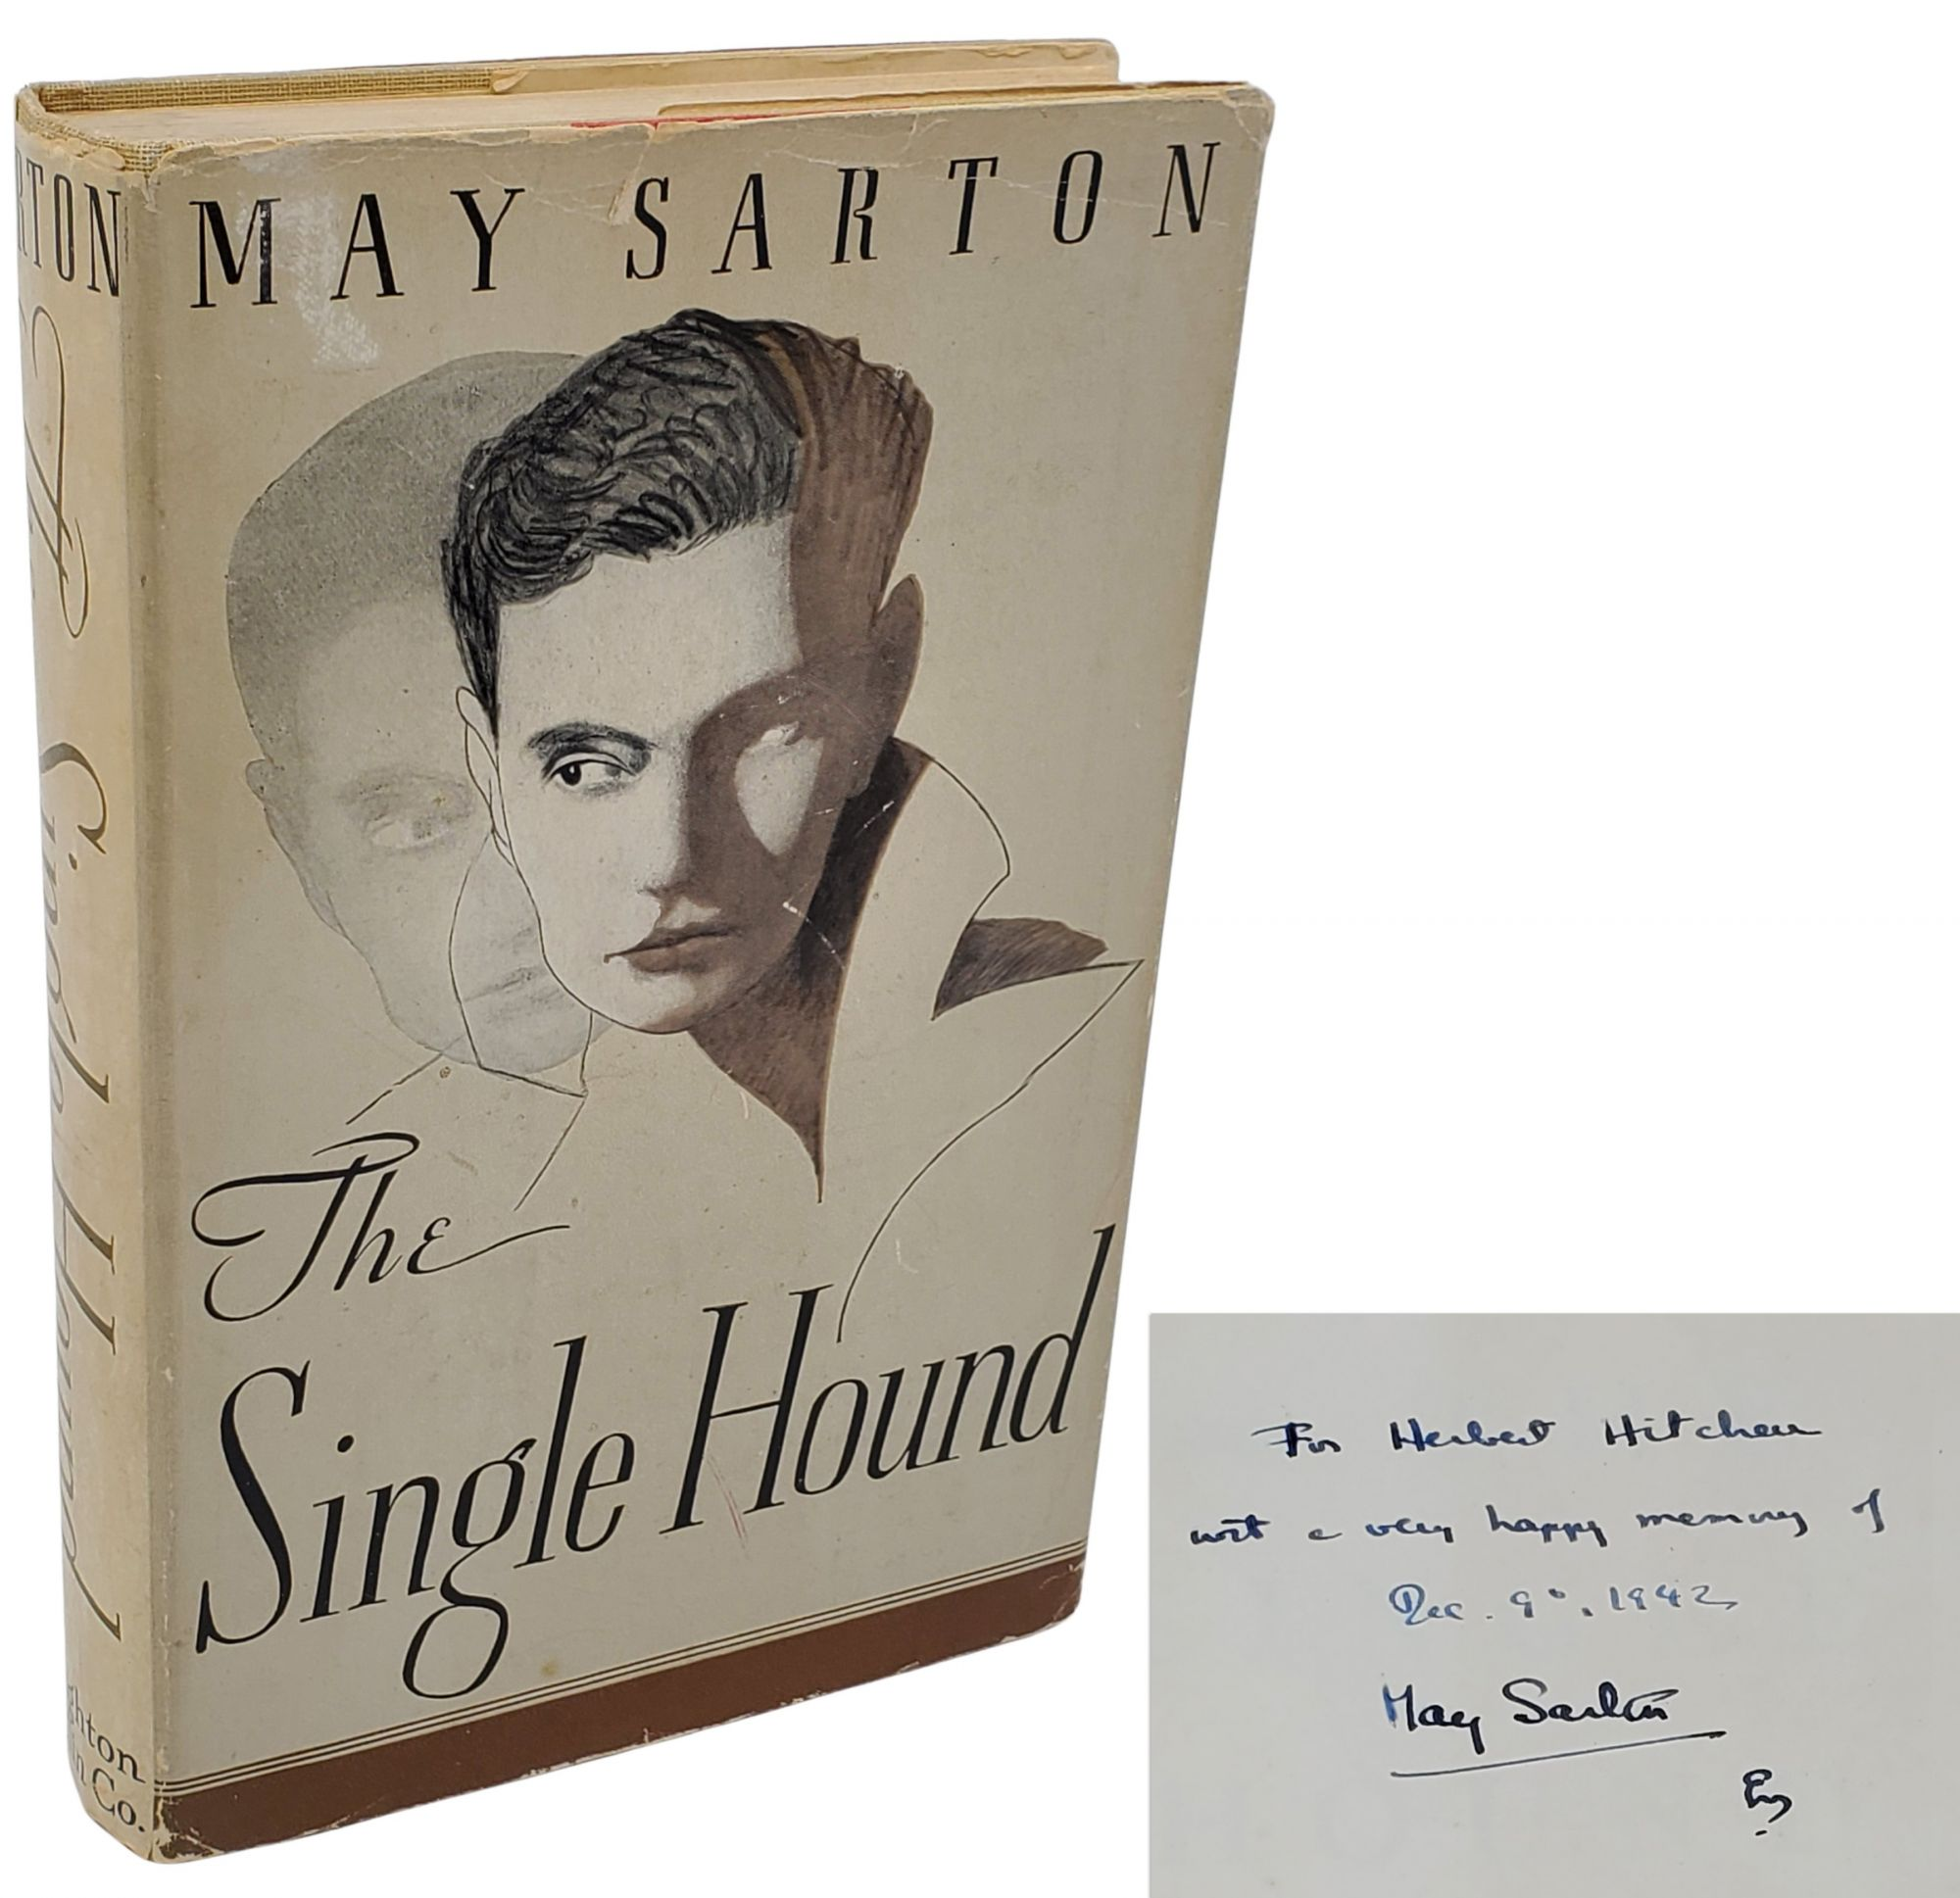 THE SINGLE HOUND [SIGNED & INSCRIBED]. May Sarton.